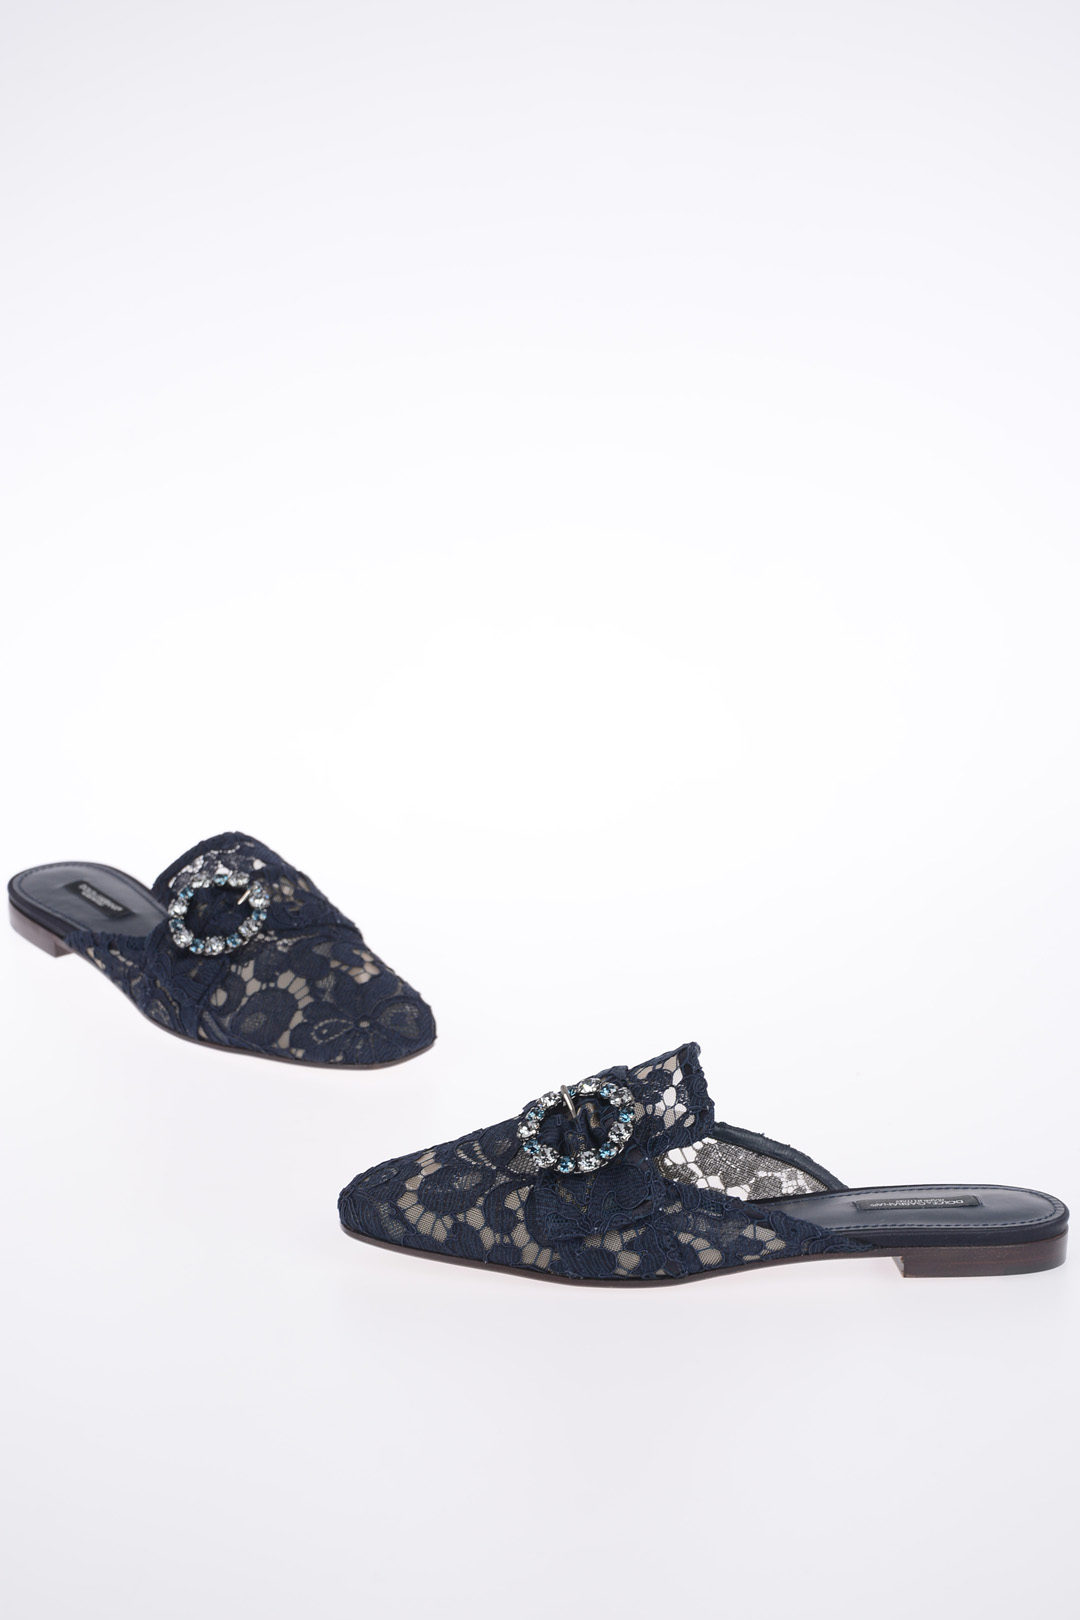 a07446c354670 Dolce & Gabbana Lace JACKIE Slippers women - Glamood Outlet